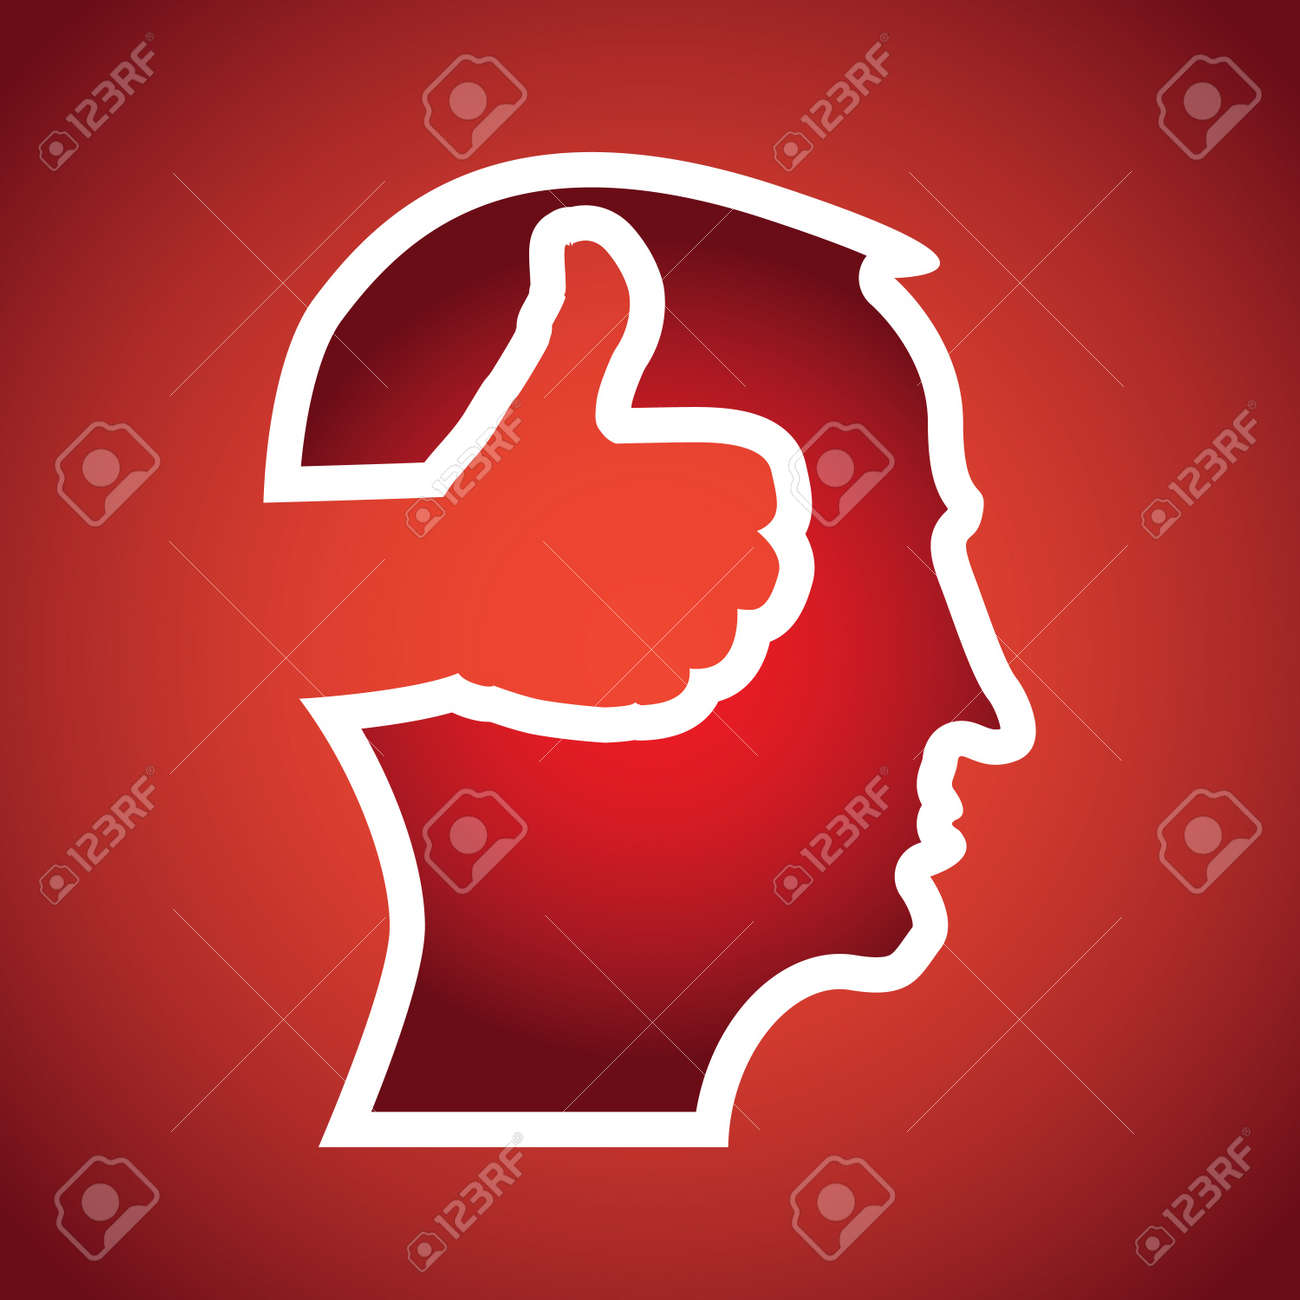 thumb up in head illustration Stock Vector - 12453990